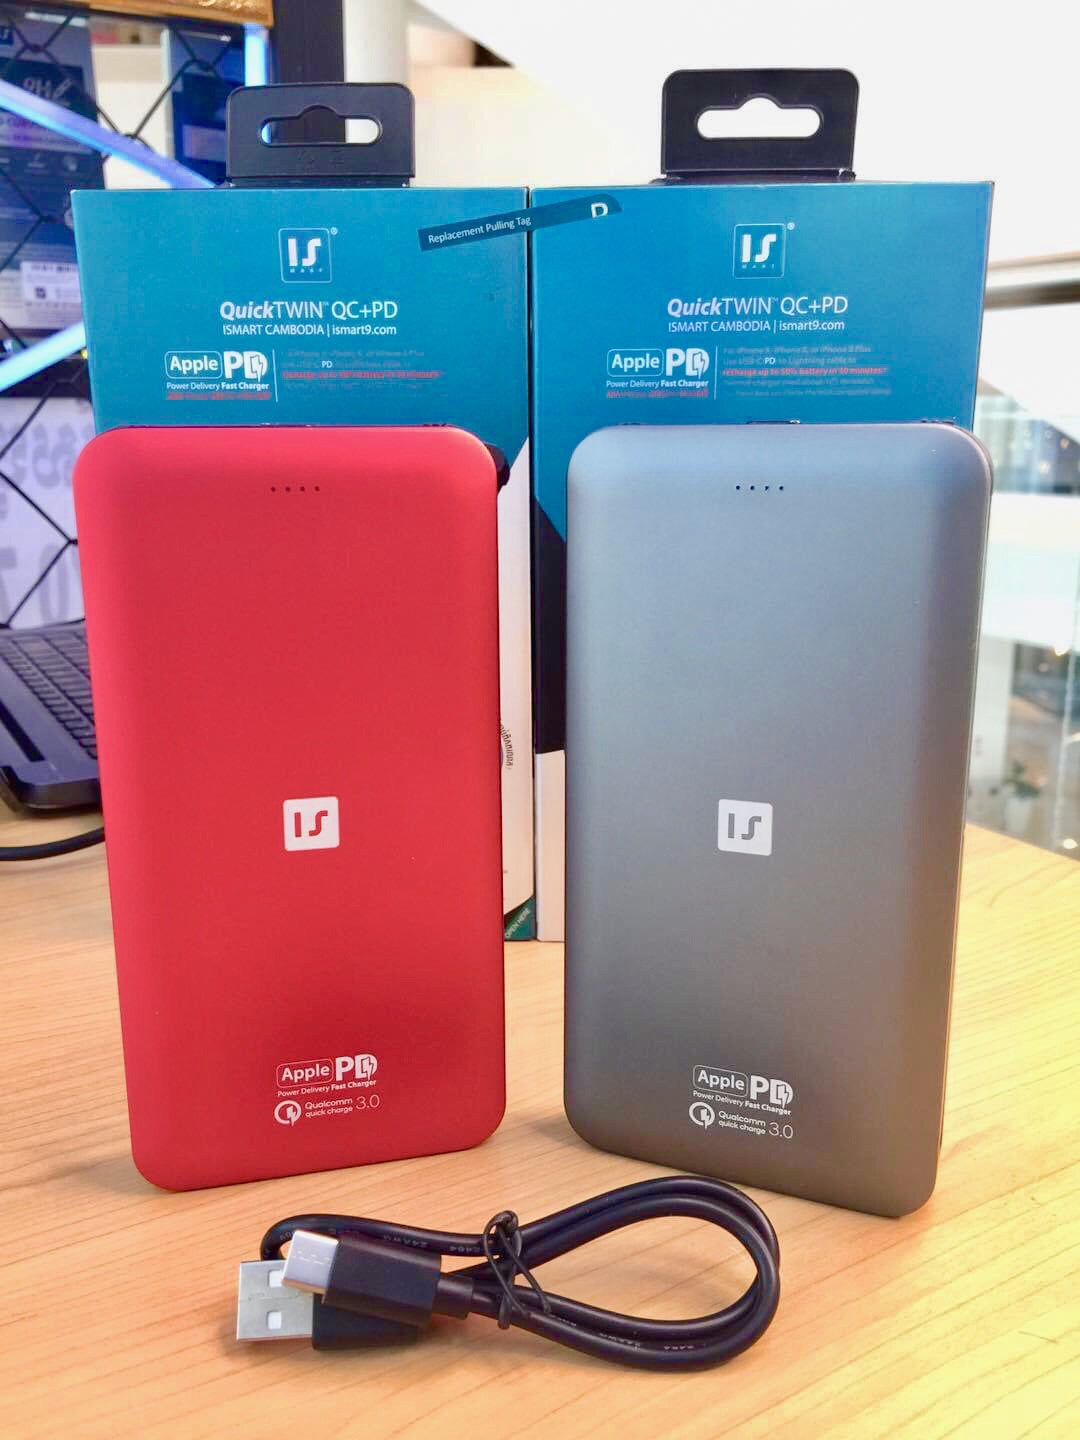 ISmart QuickTWIN QC+PD Fast charge Power bank x2 Build-in Cable